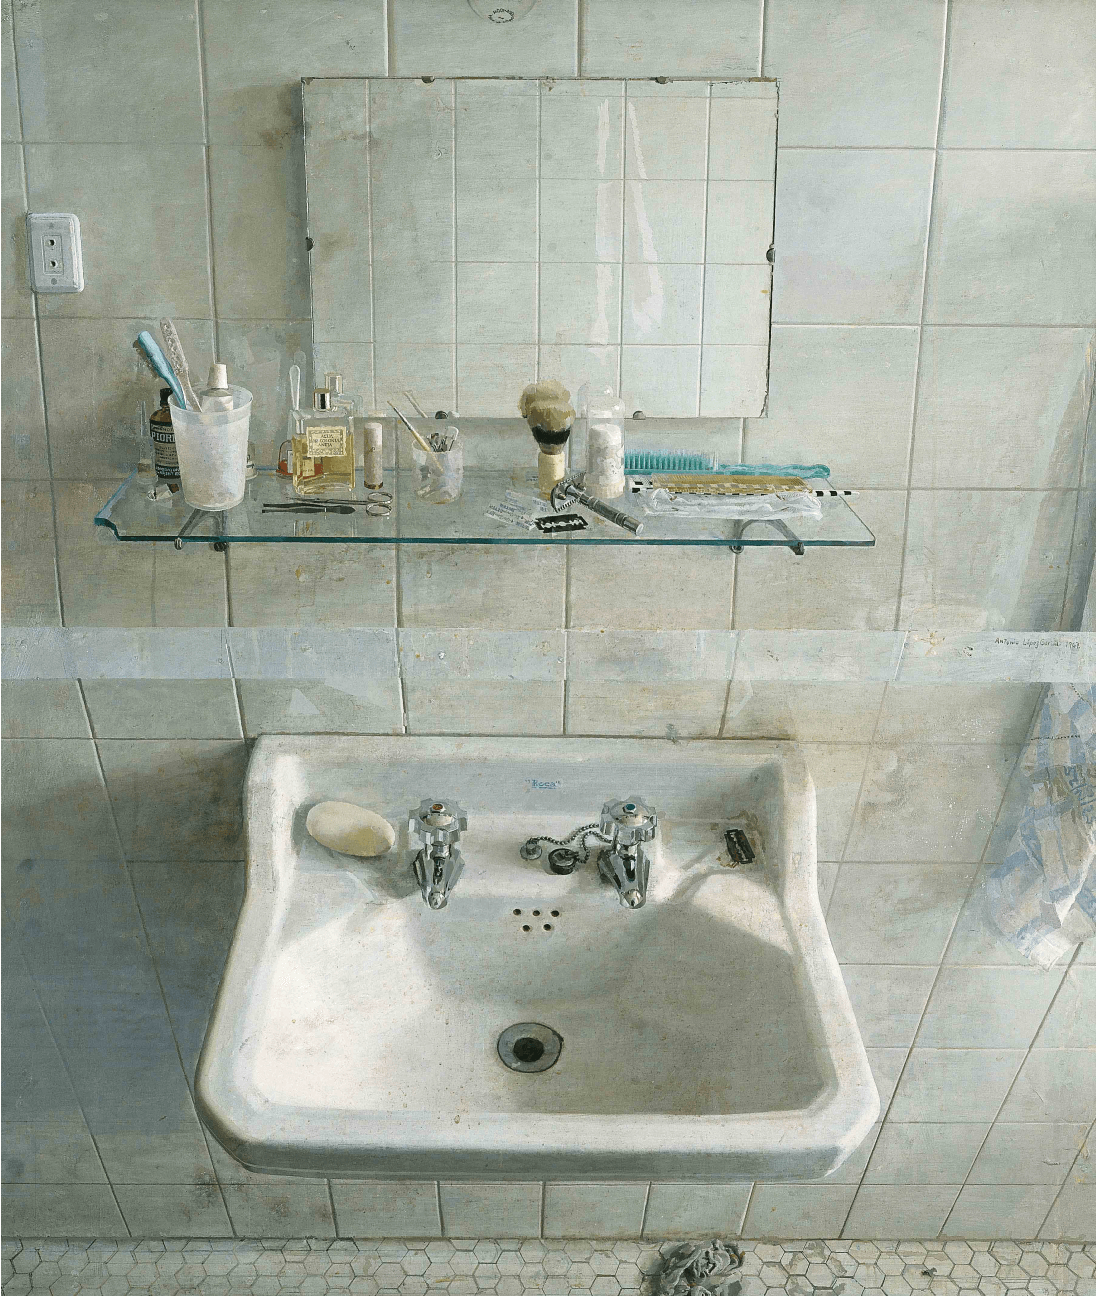 Antonio López García, Sink and Mirror, oil on wood, 1967 (Museum of Fine Arts, Boston)